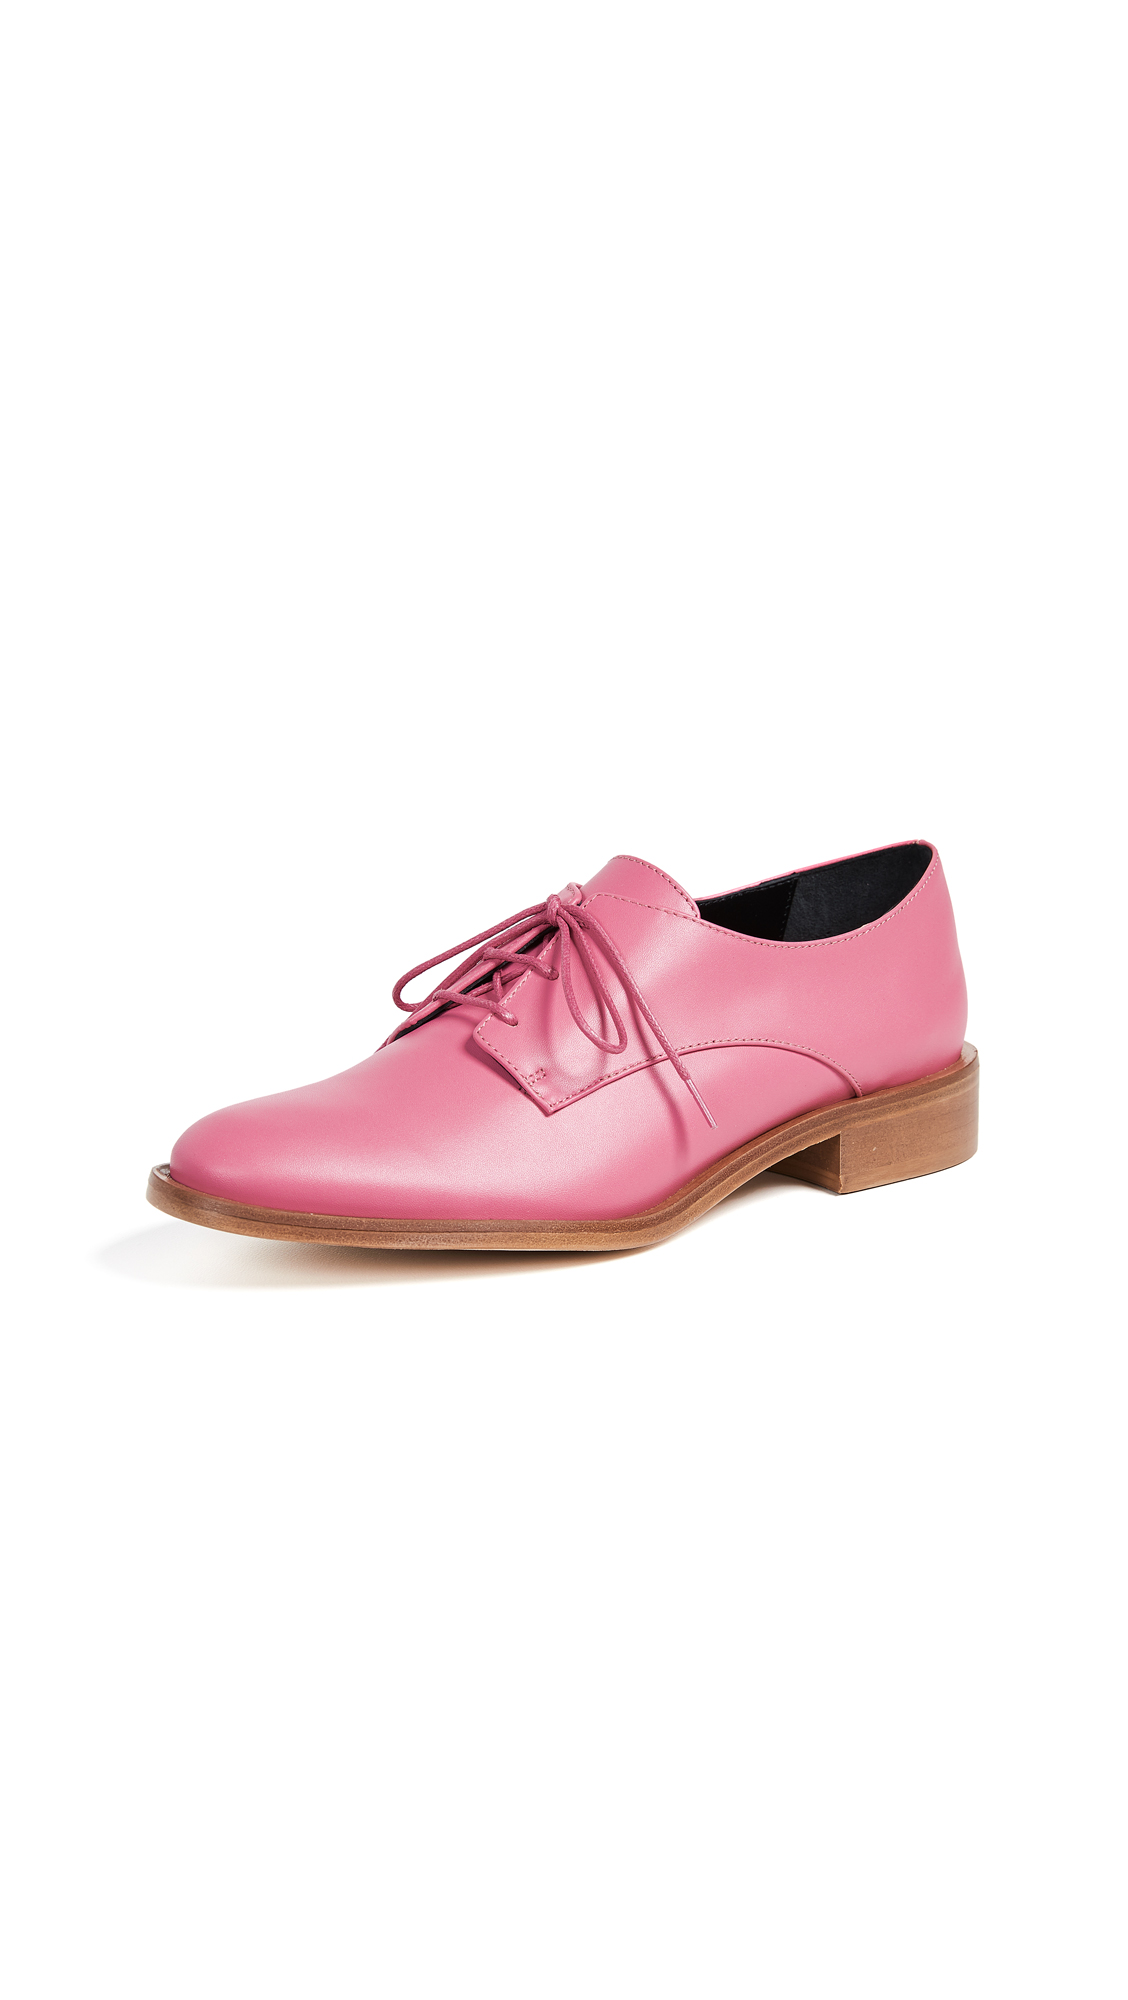 Tibi Carter Oxfords - Pink